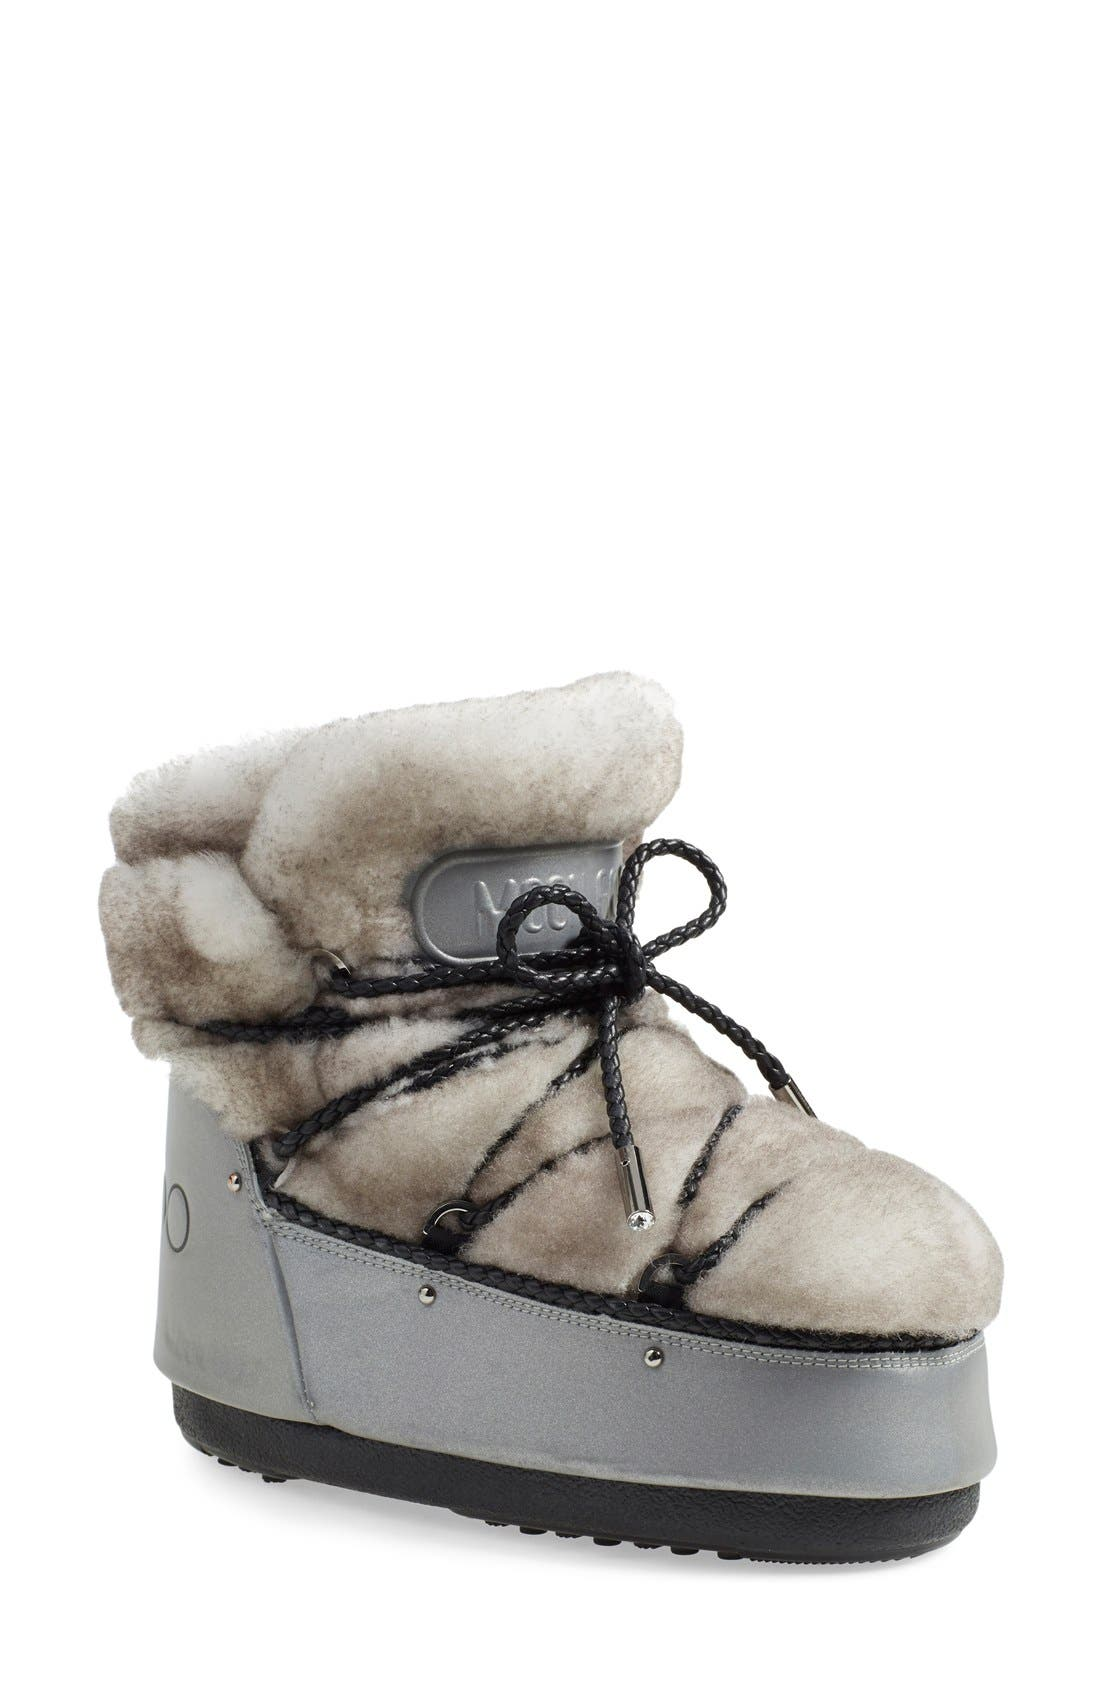 Alternate Image 1 Selected - Jimmy Choo Genuine Shearling Moon Boot® (Women)